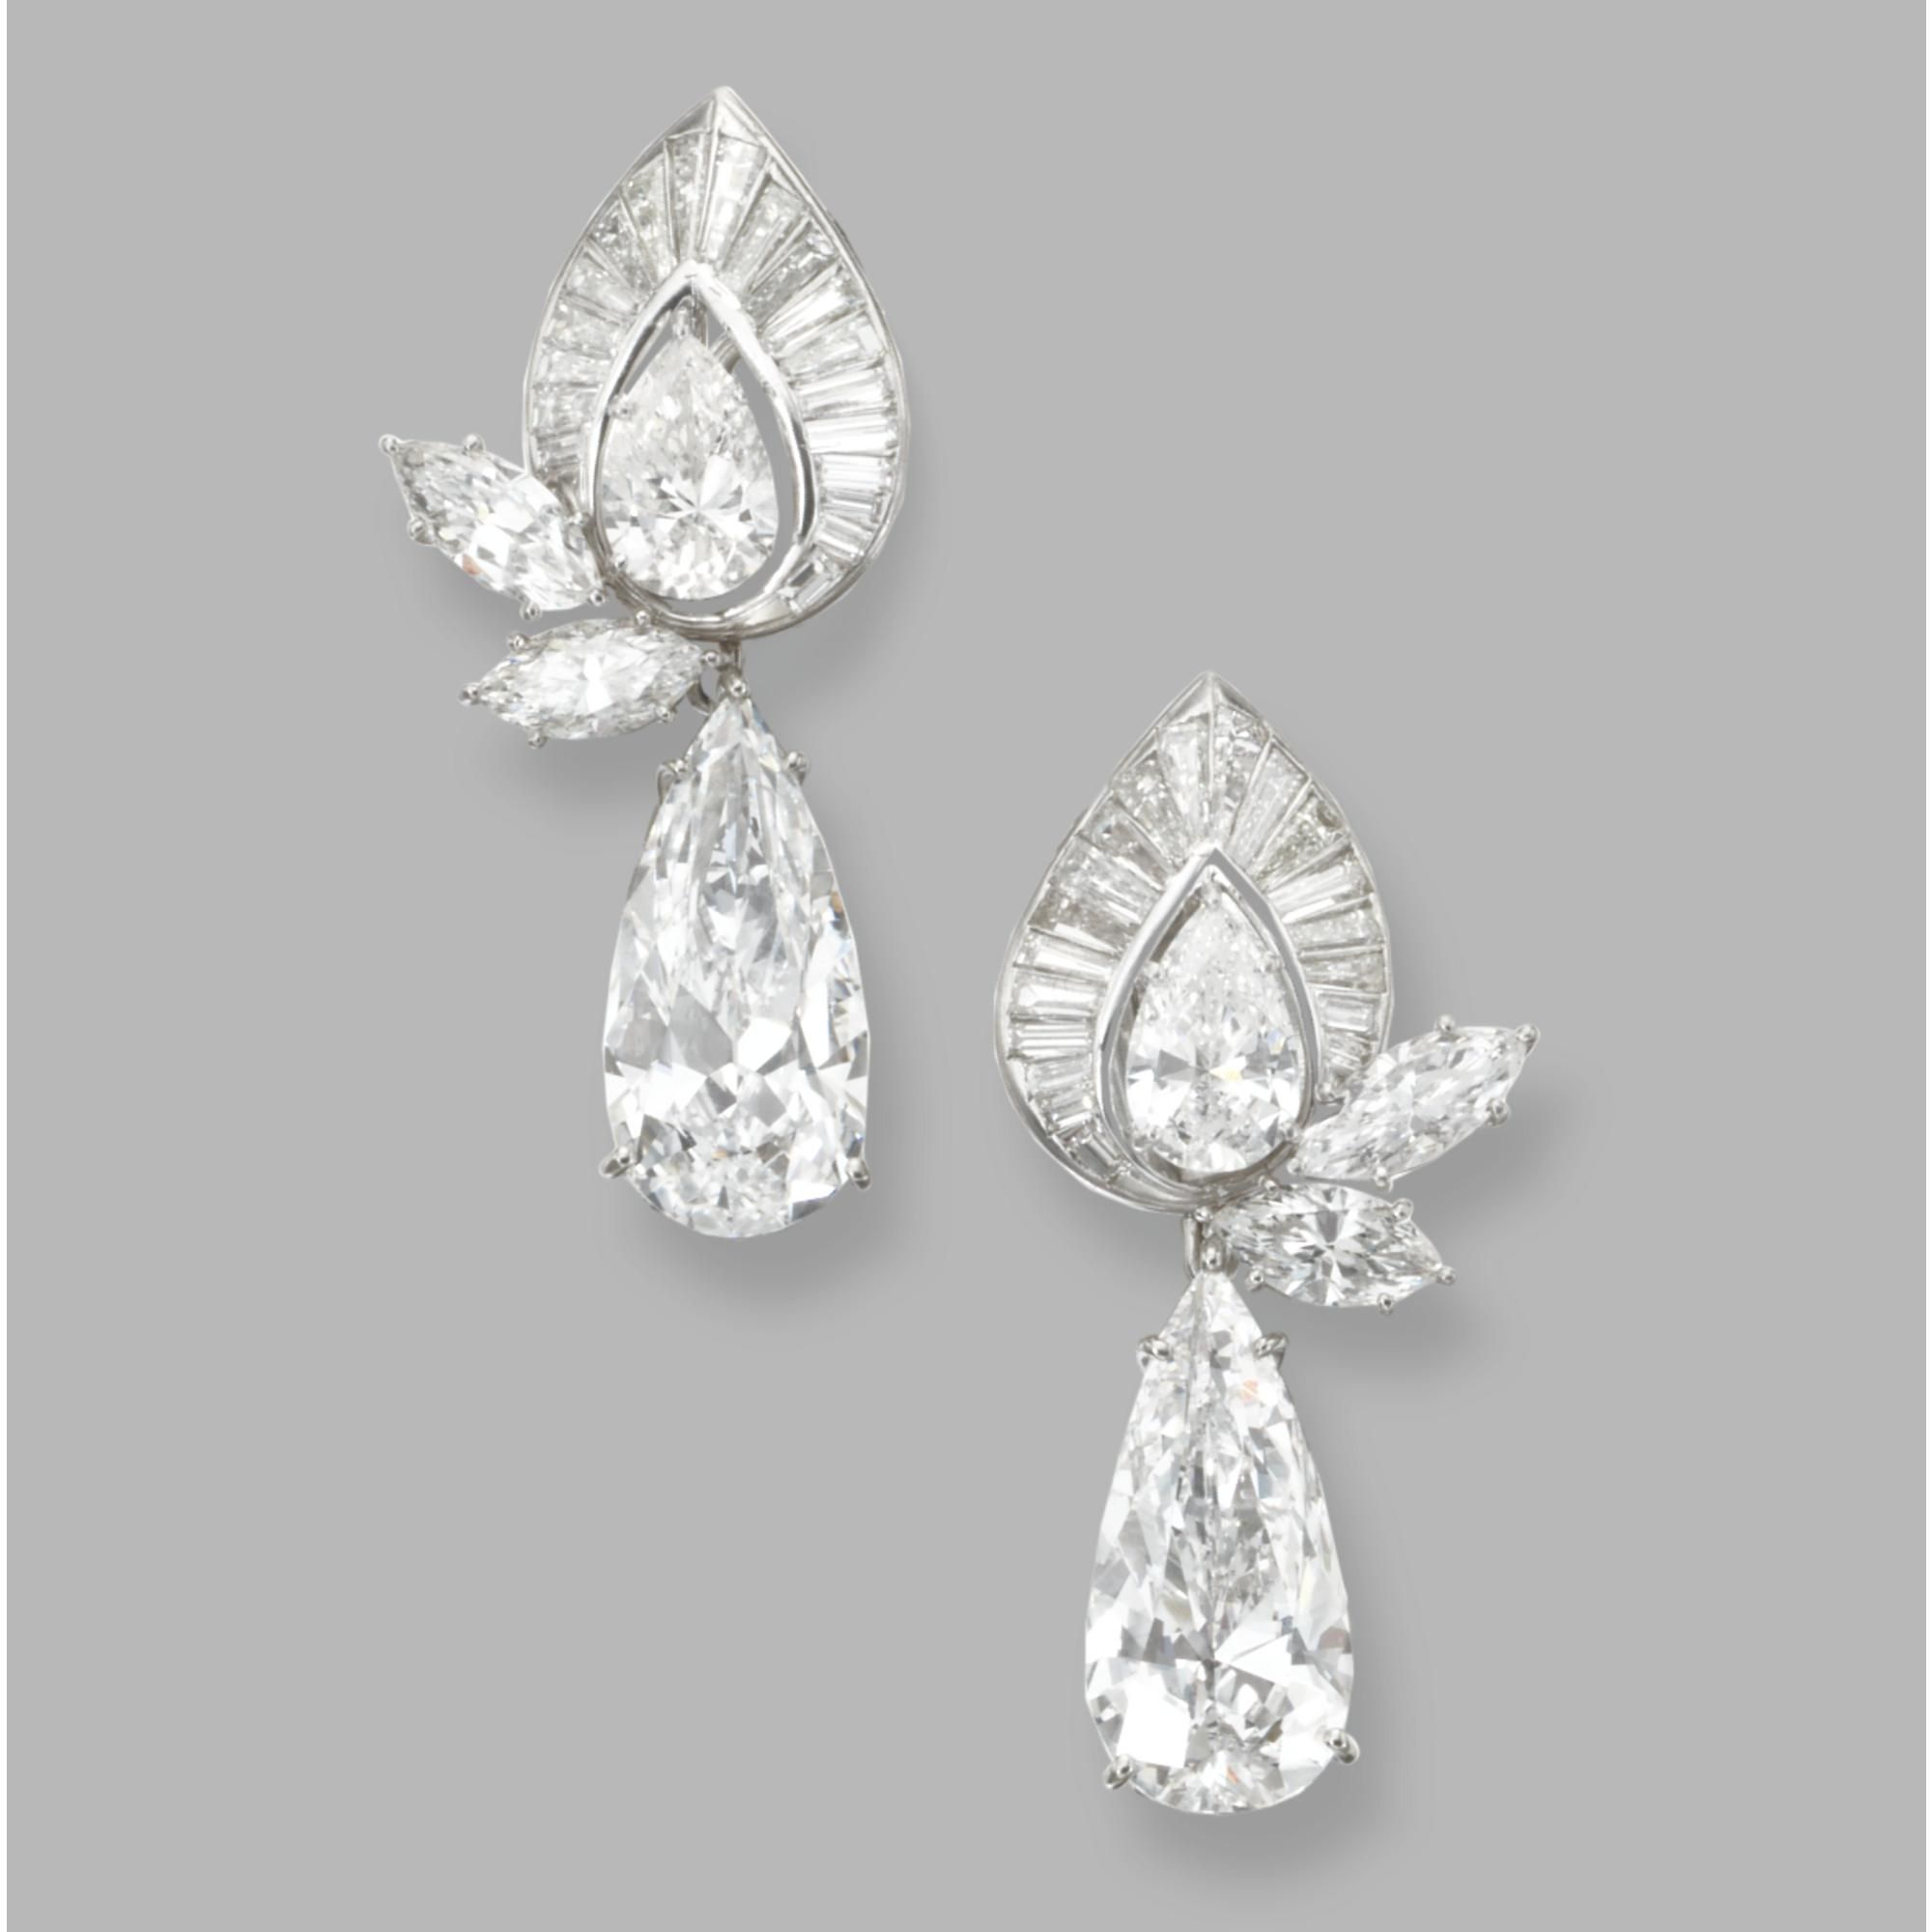 The Pear Shaped Diamond Pendants Weighing 5 04 And 00 Carats Tops Set With Diamonds 1 85 Marquise